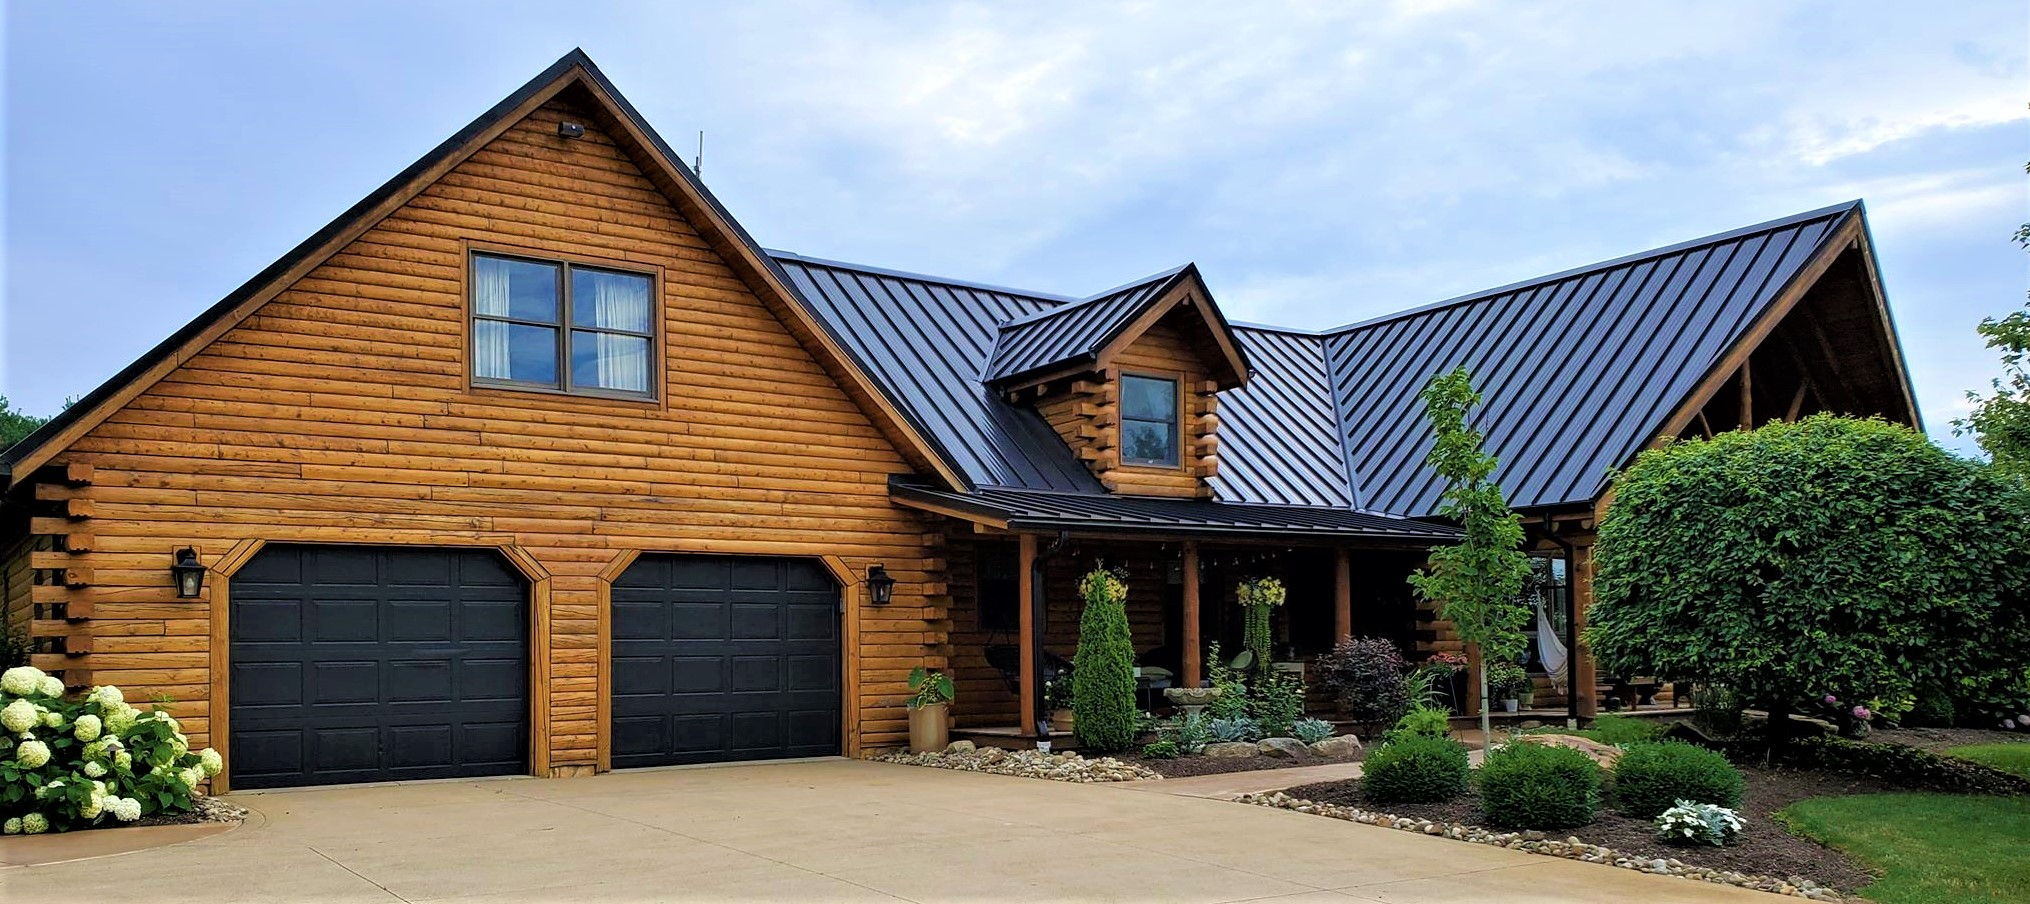 Double Car Garage Attached to Log Home